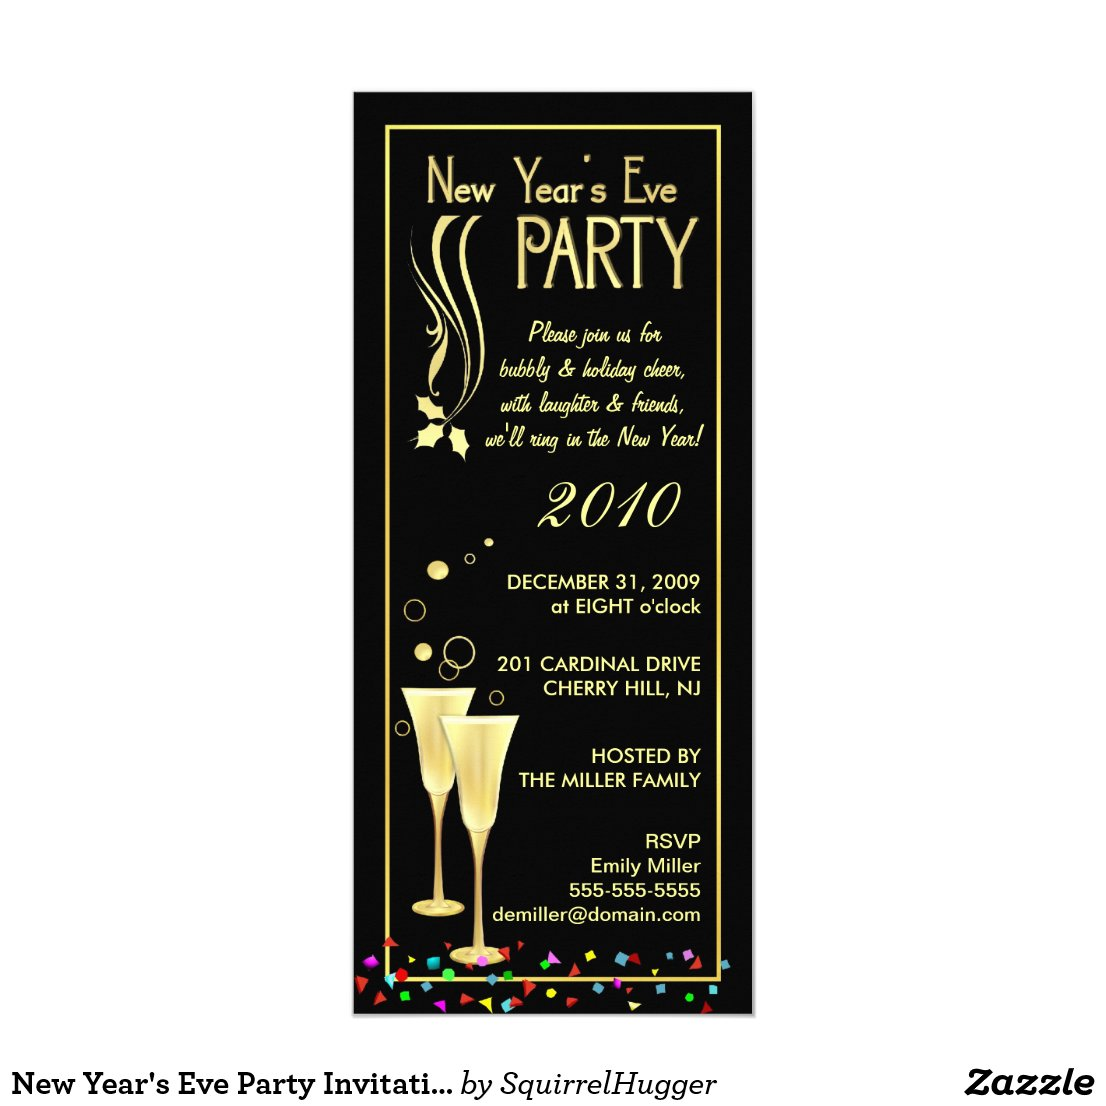 New Year's Eve Party Invitations - Slim Cards